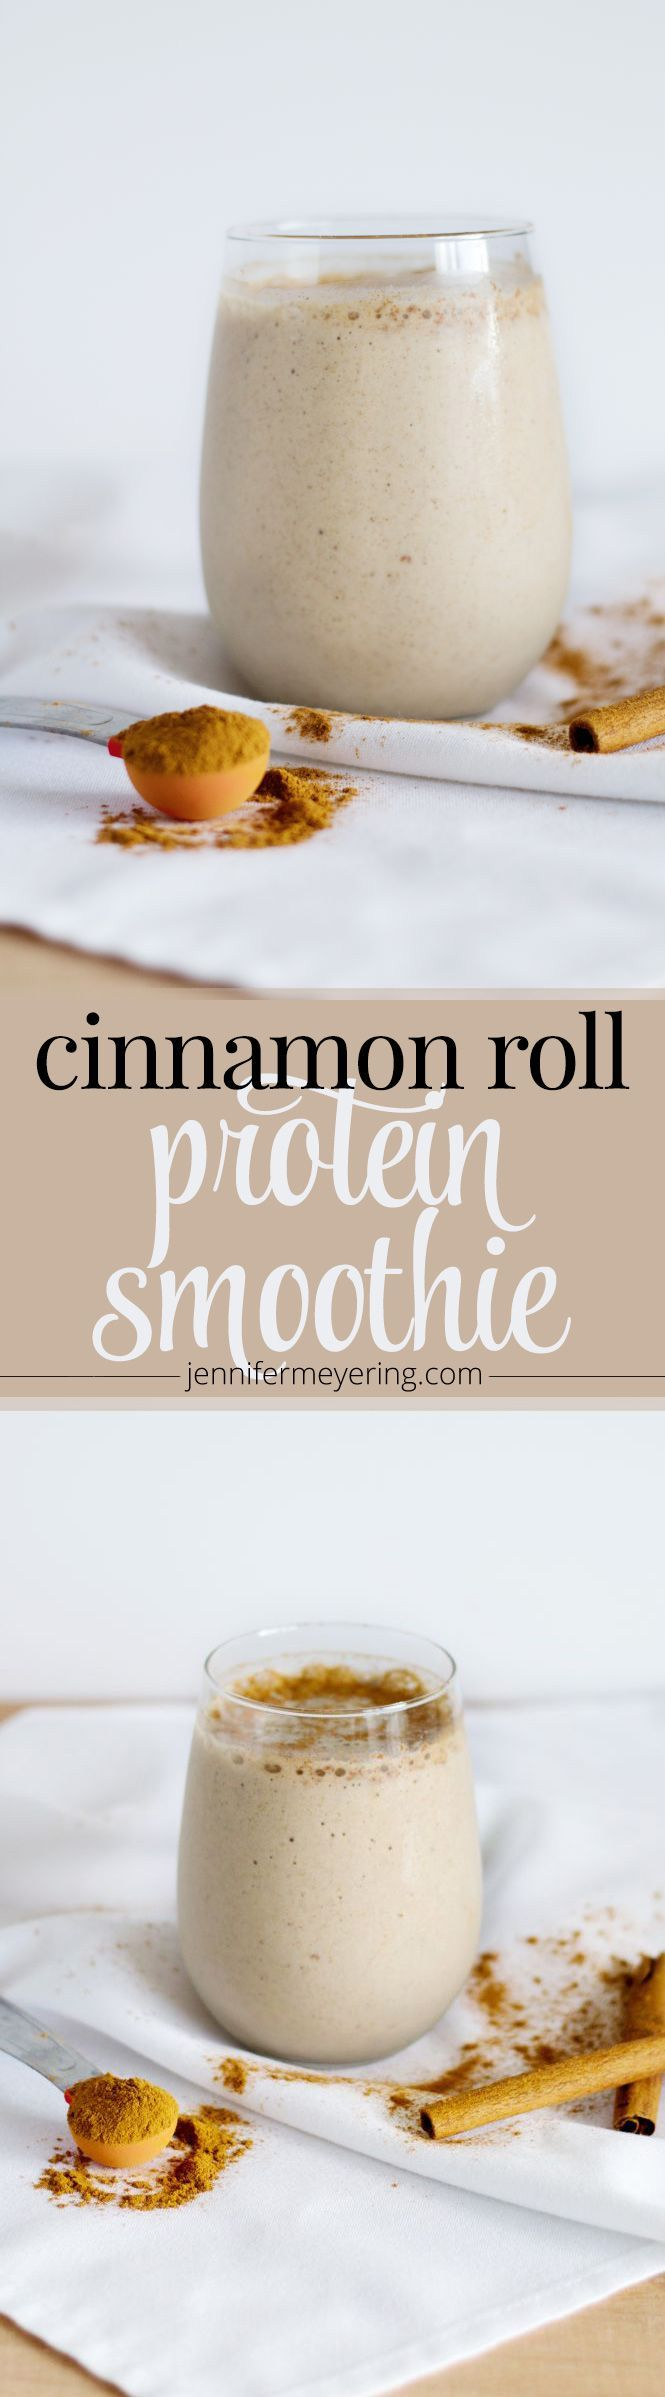 "Cinnamon Roll Protein Smoothie | <a href="""" rel=""nofollow"" target=""_blank""></a>"